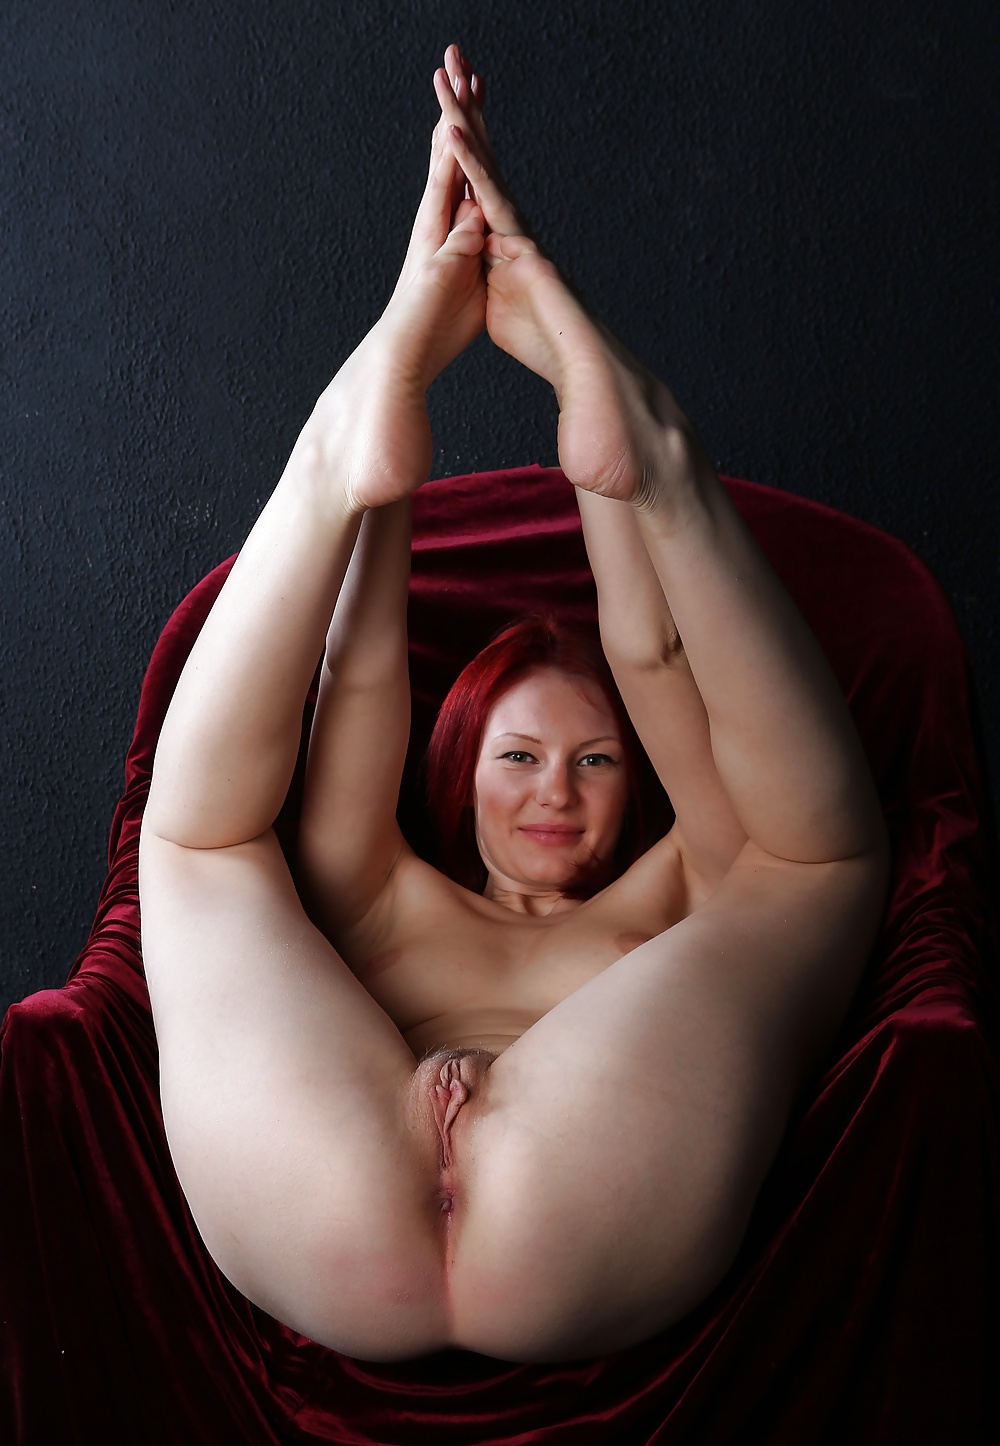 Minch recommend 2 dicks in pussy